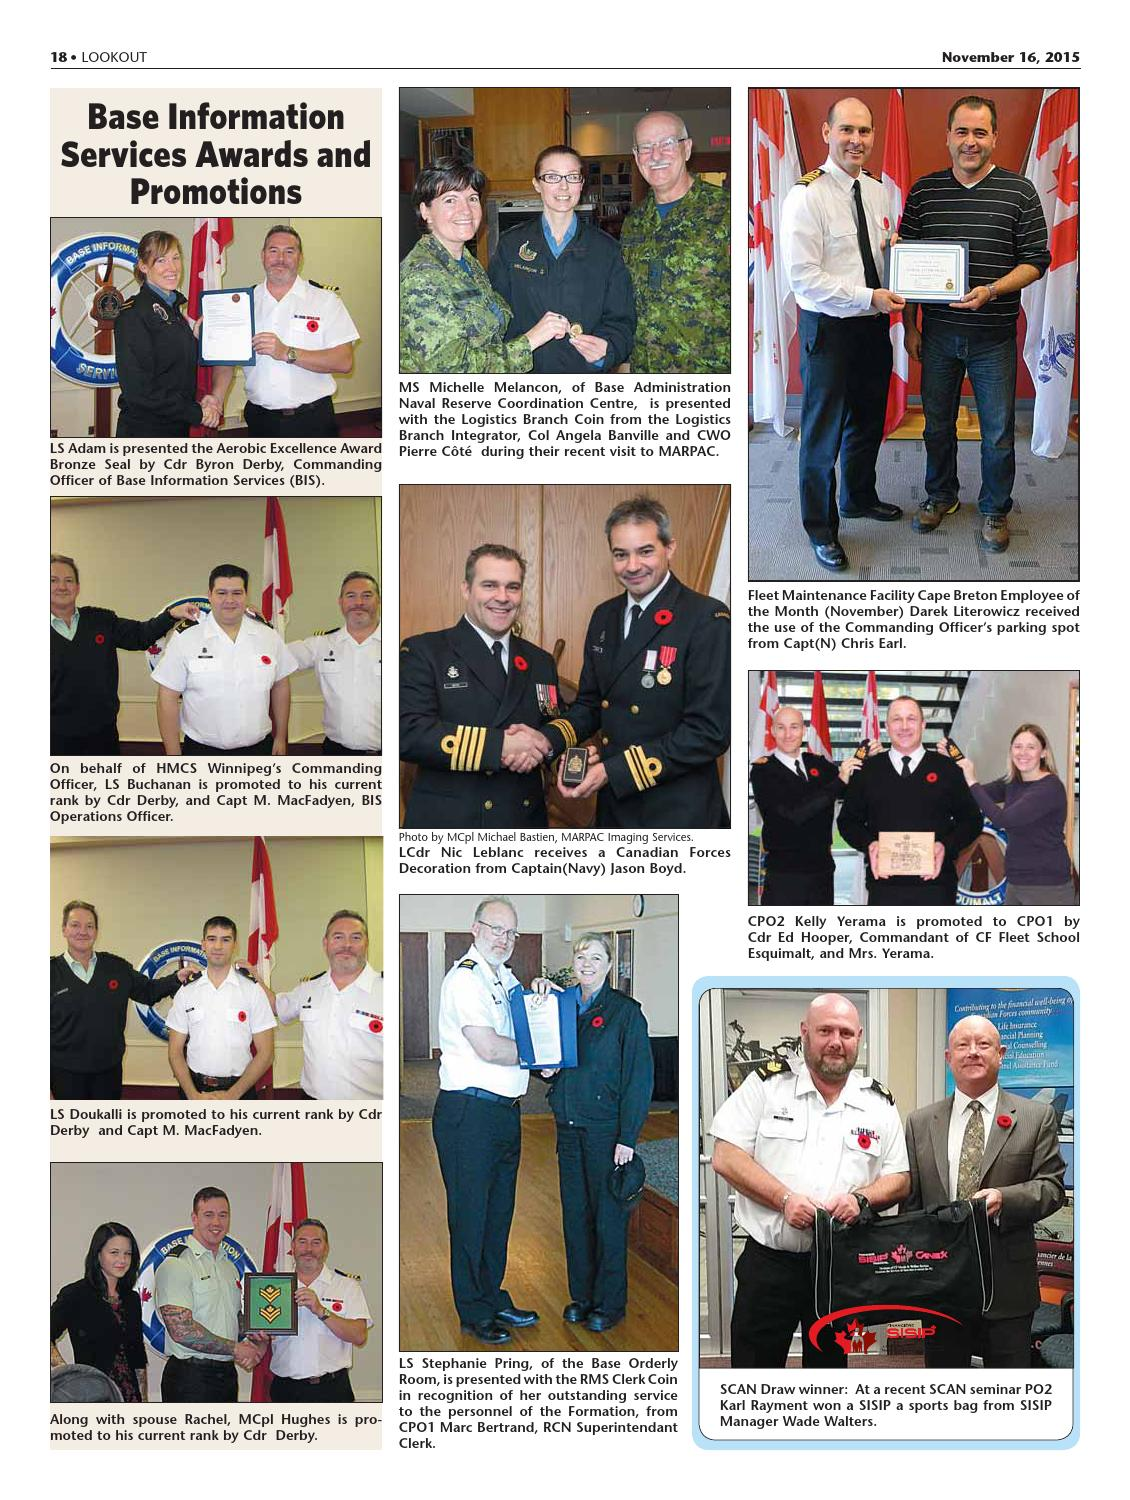 Issue 46, November 16, 2015 by Lookout Newspaper - issuu